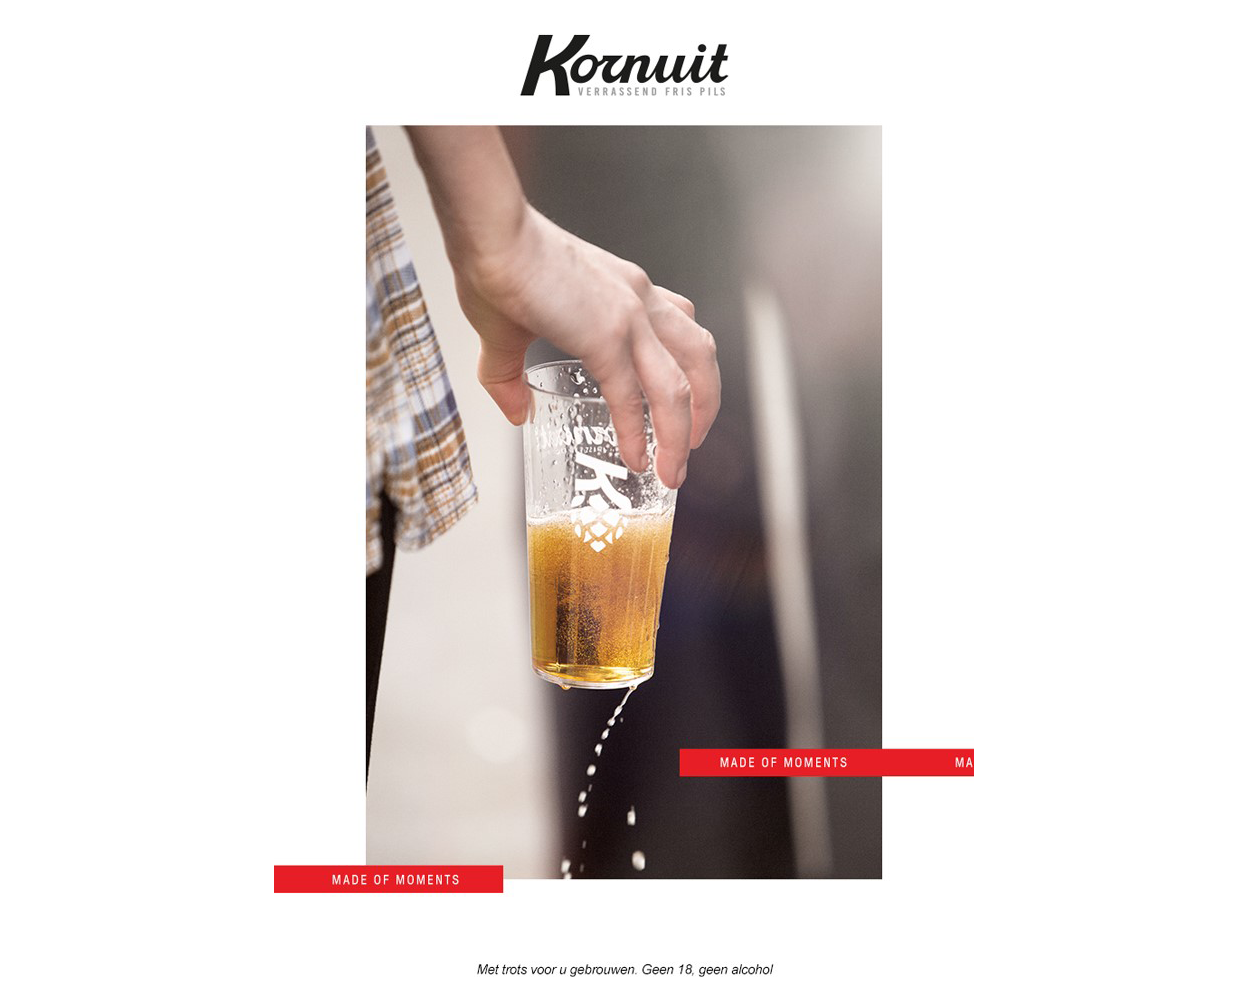 Kornuit: Made of Moments